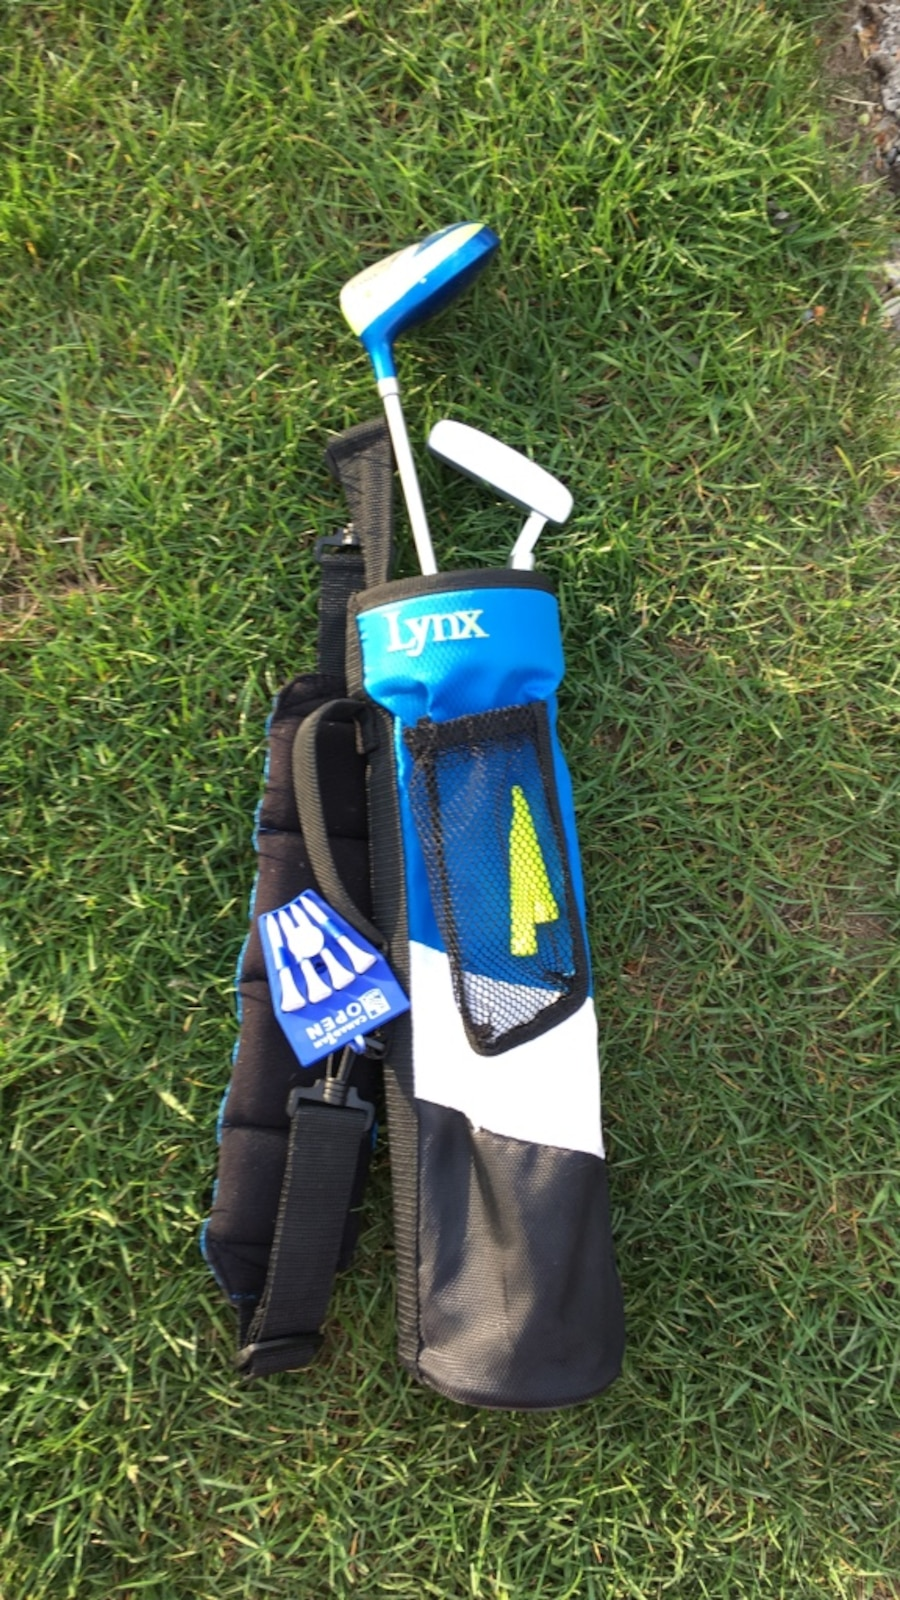 blue and black Lynx golf bag with putter golf club